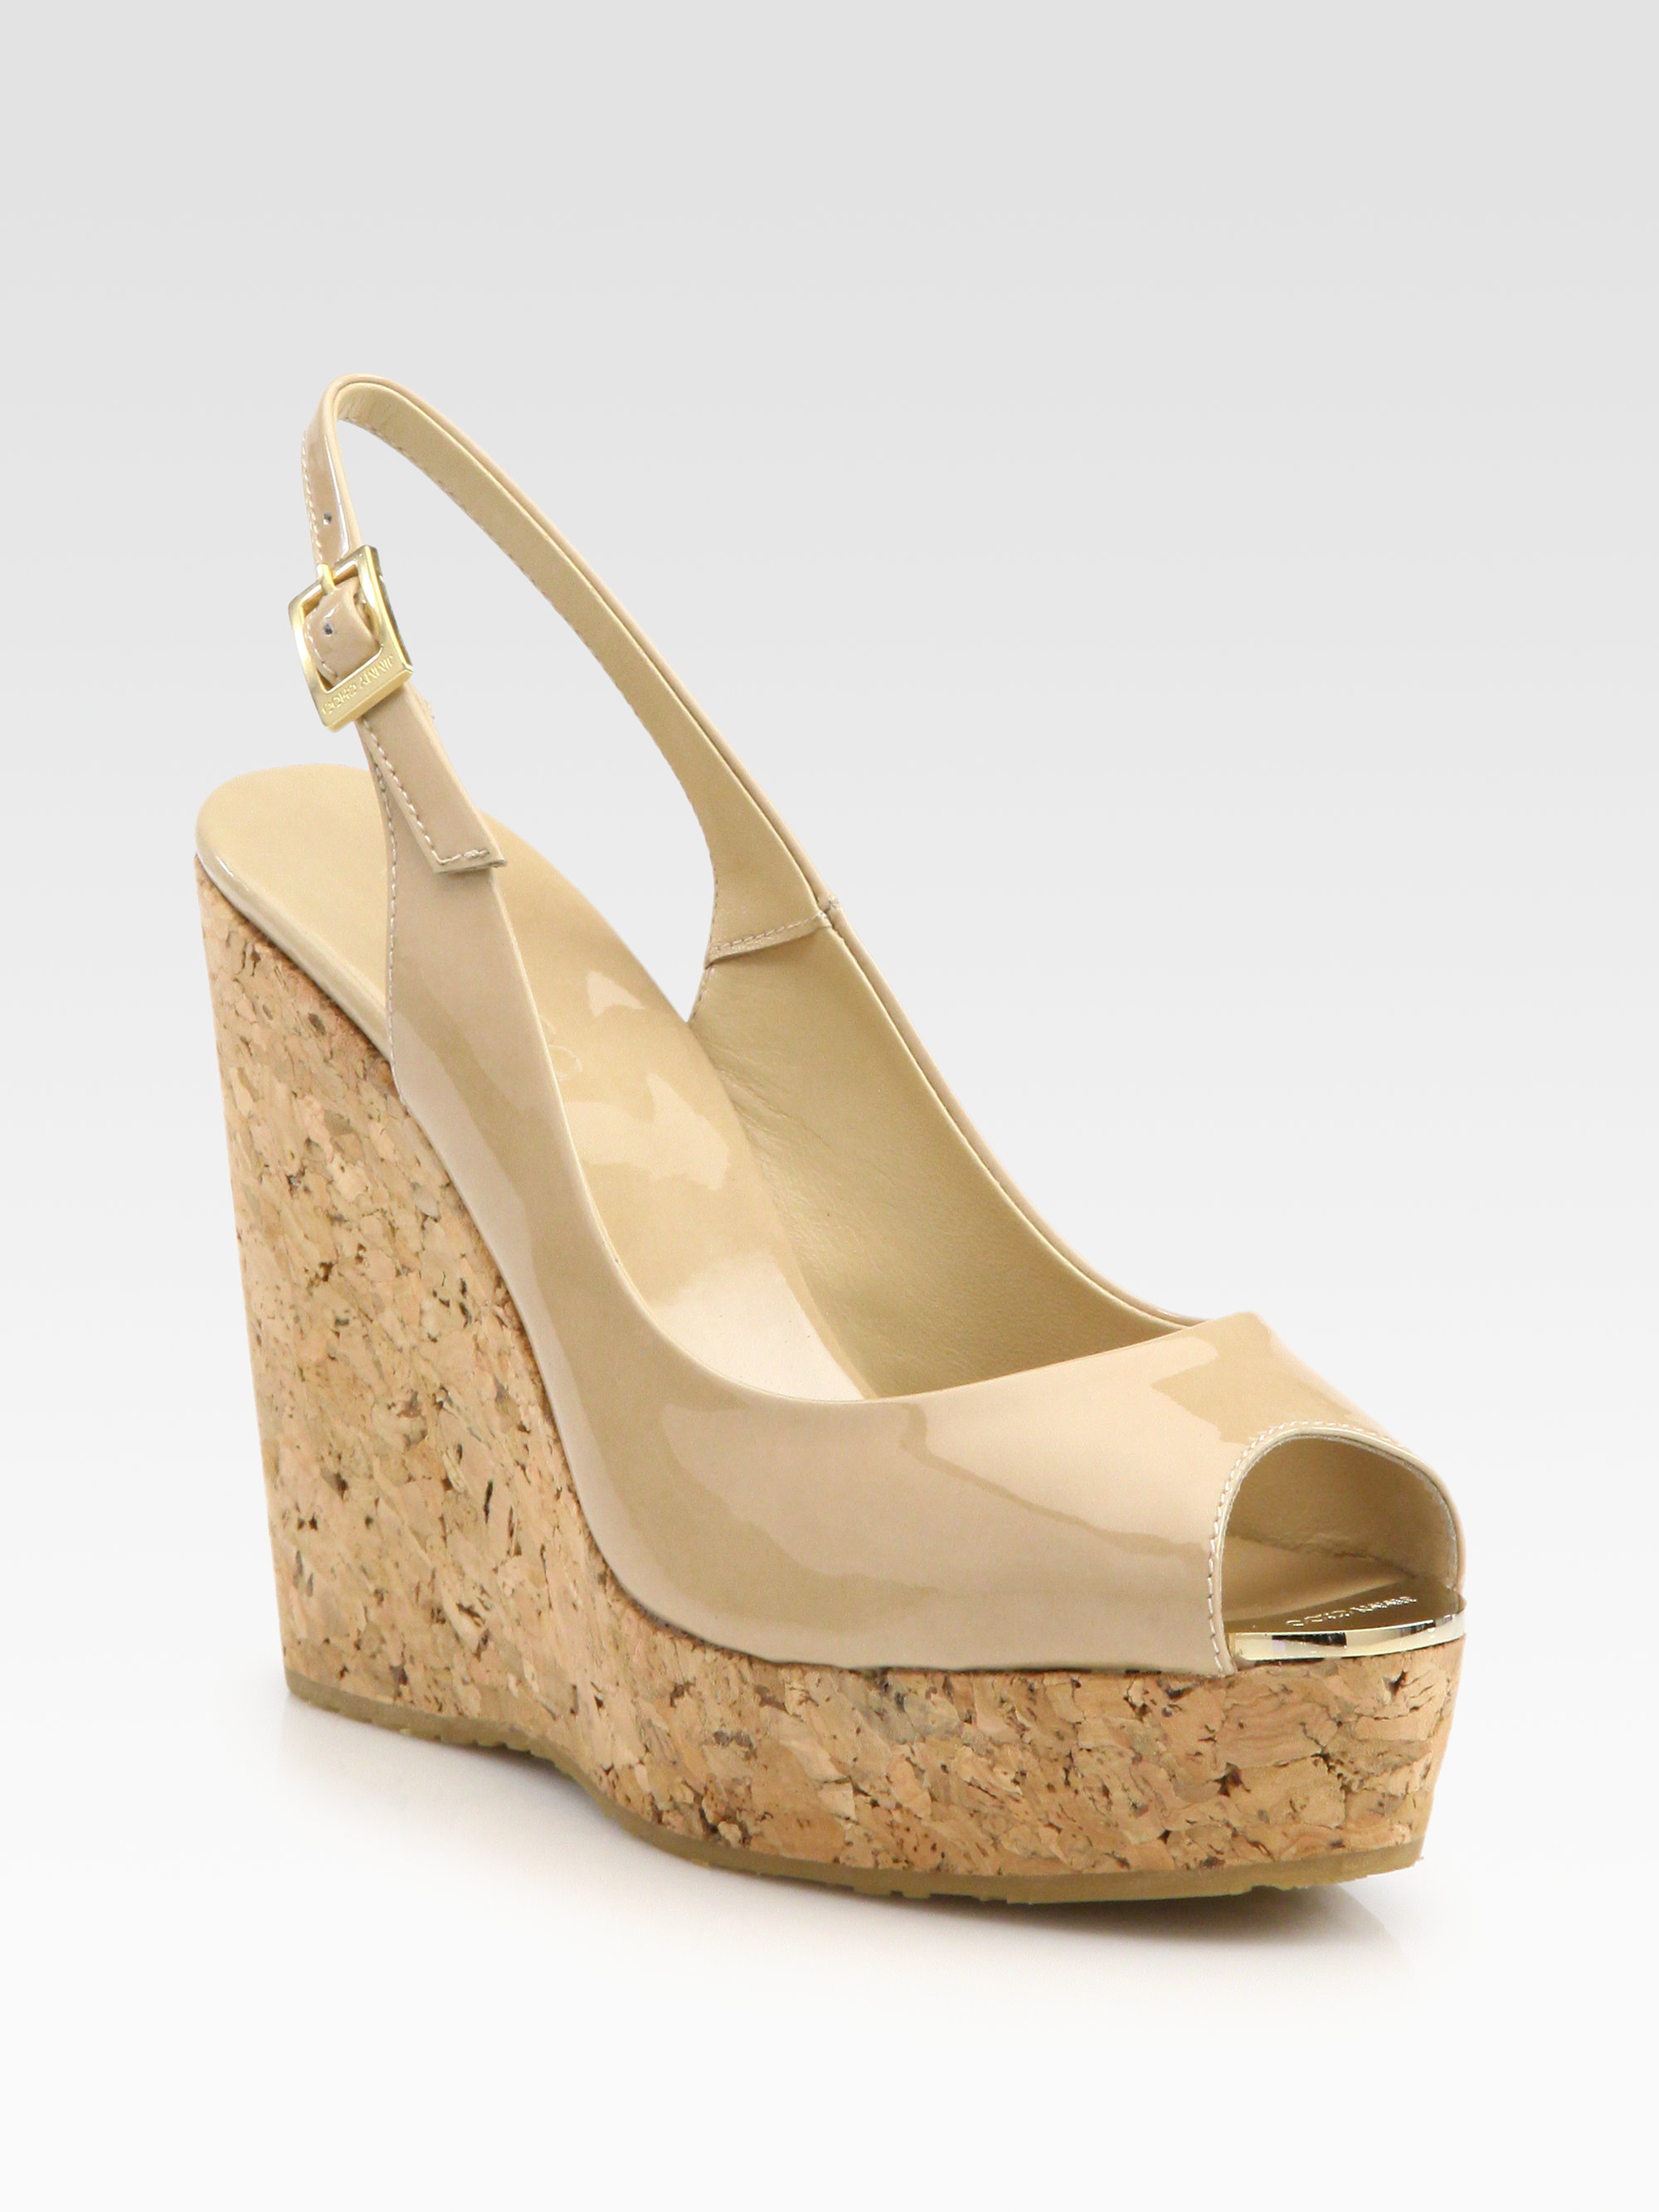 d3a9e046978d06 Lyst - Jimmy Choo Prova Patent Leather Cork Wedge Sandals in Natural